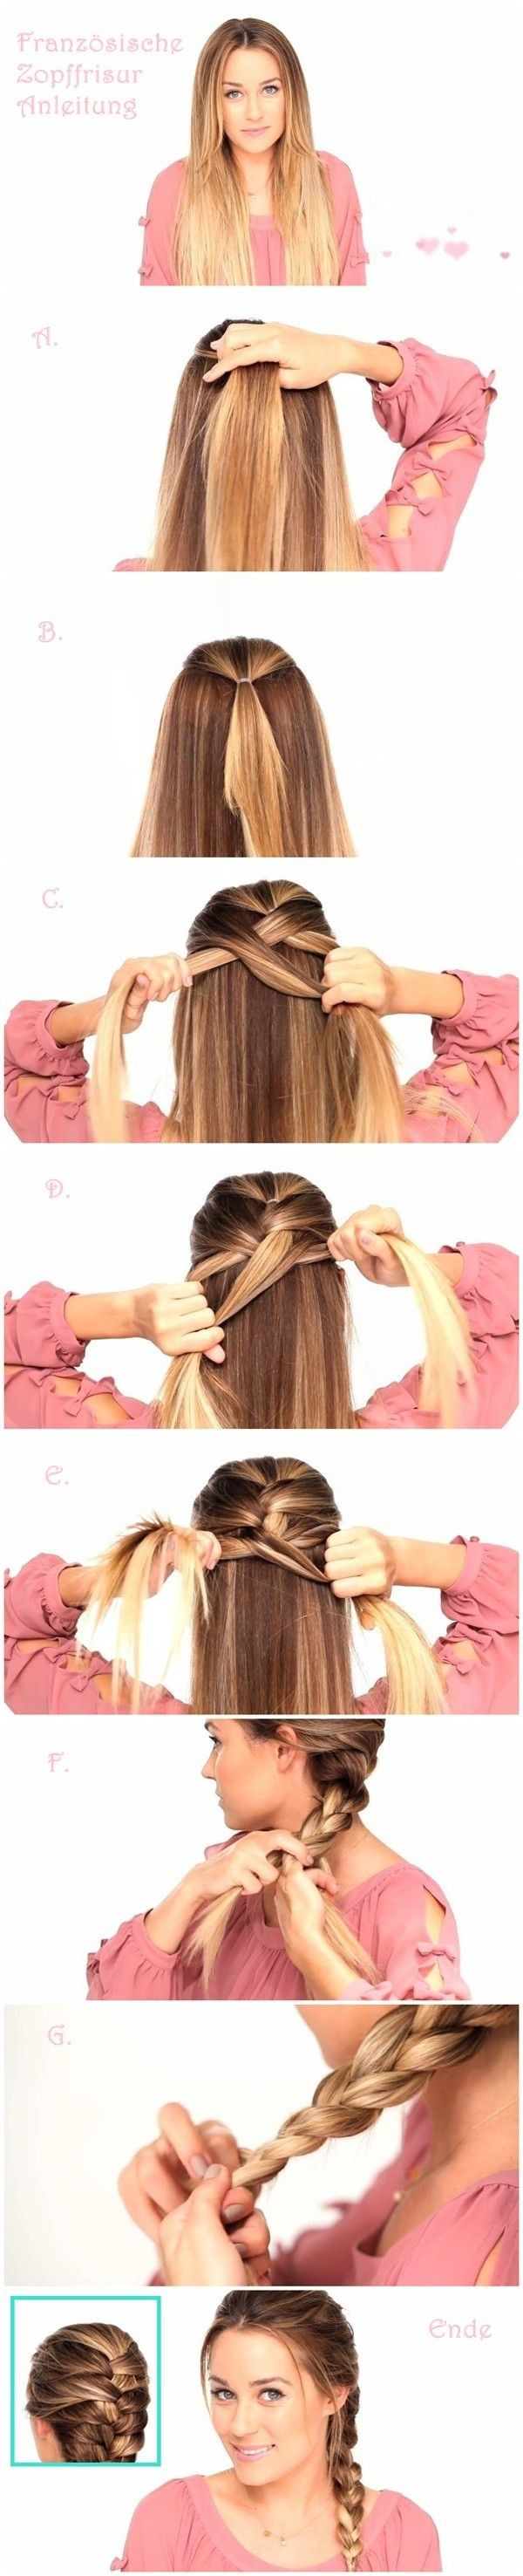 Remarkable 1000 Ideas About Easy Braided Hairstyles On Pinterest Types Of Hairstyle Inspiration Daily Dogsangcom